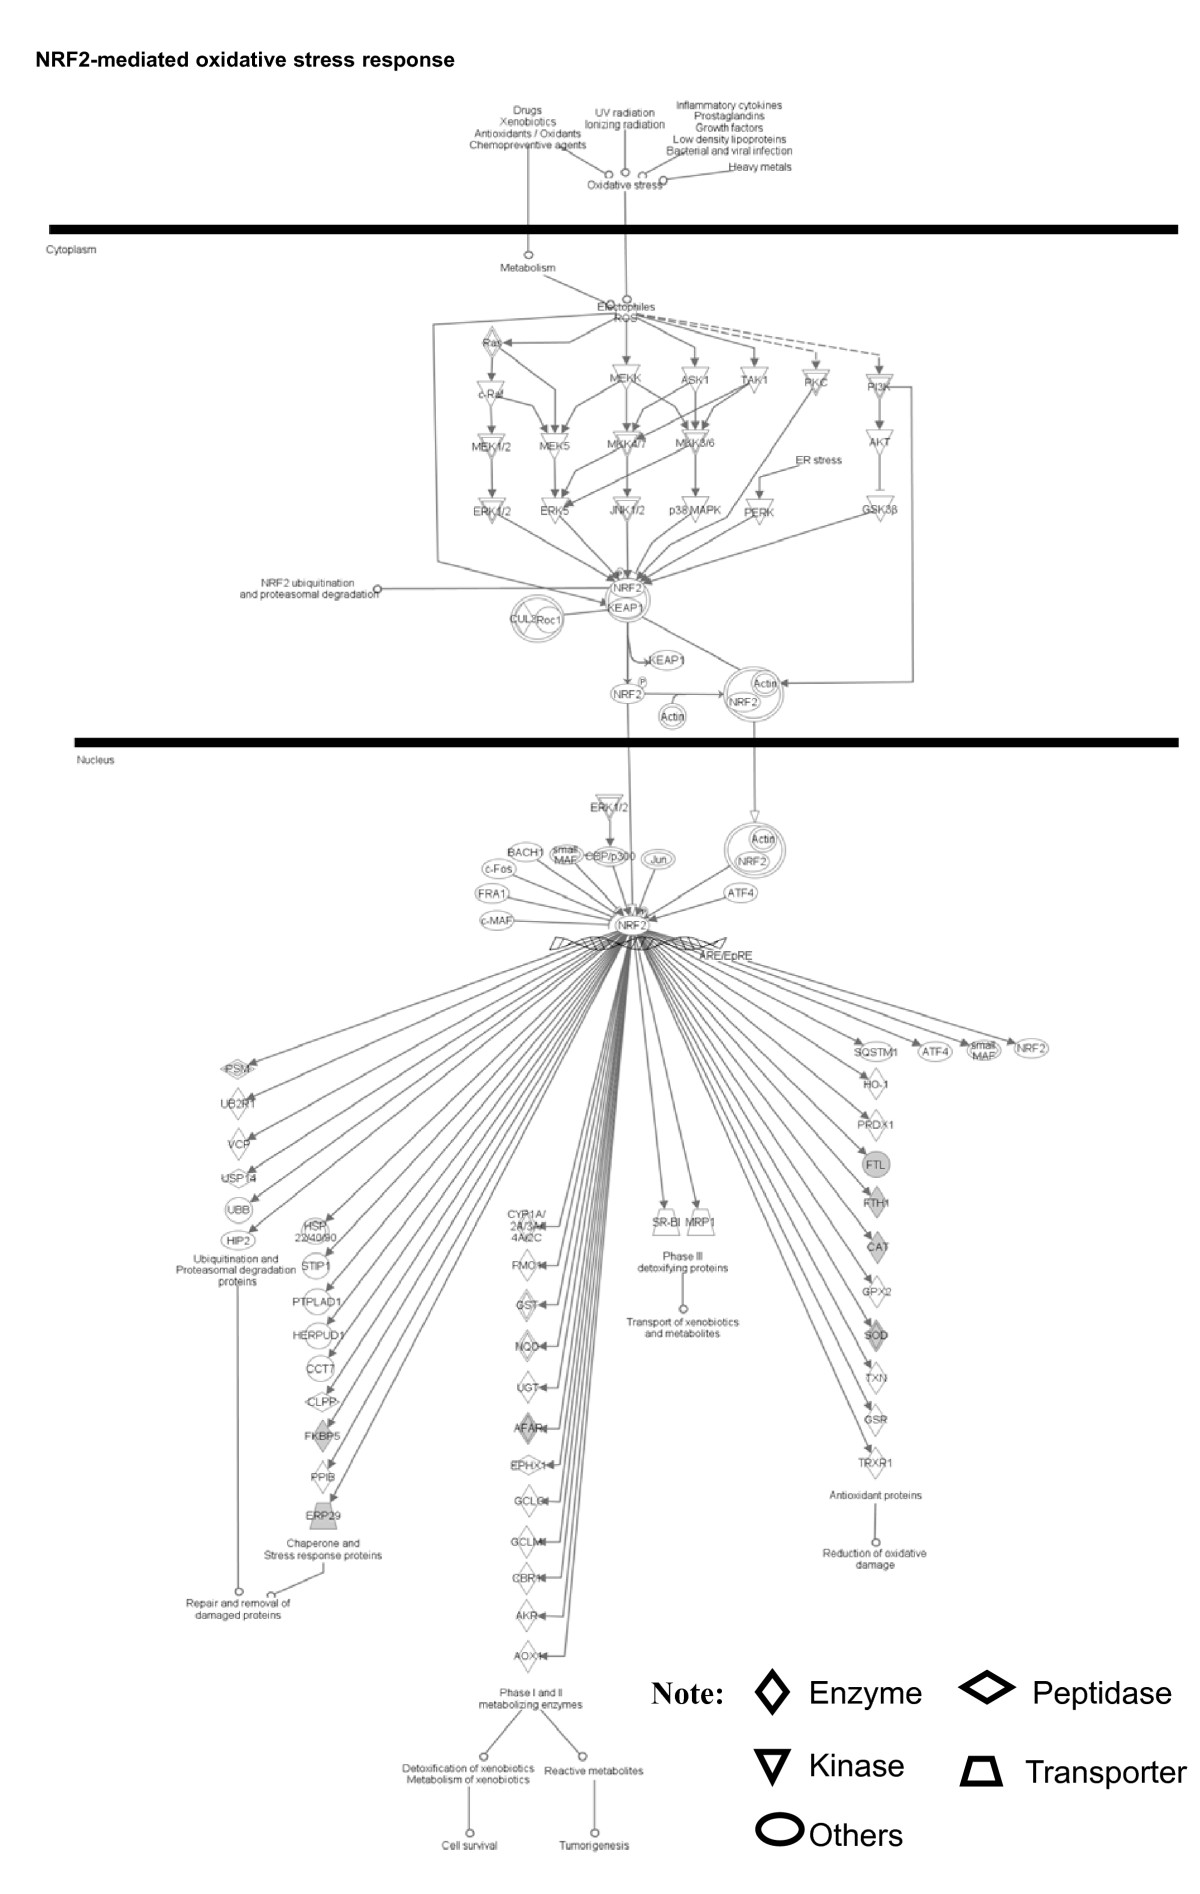 https://static-content.springer.com/image/art%3A10.1186%2F1755-8794-3-13/MediaObjects/12920_2009_Article_148_Fig4_HTML.jpg